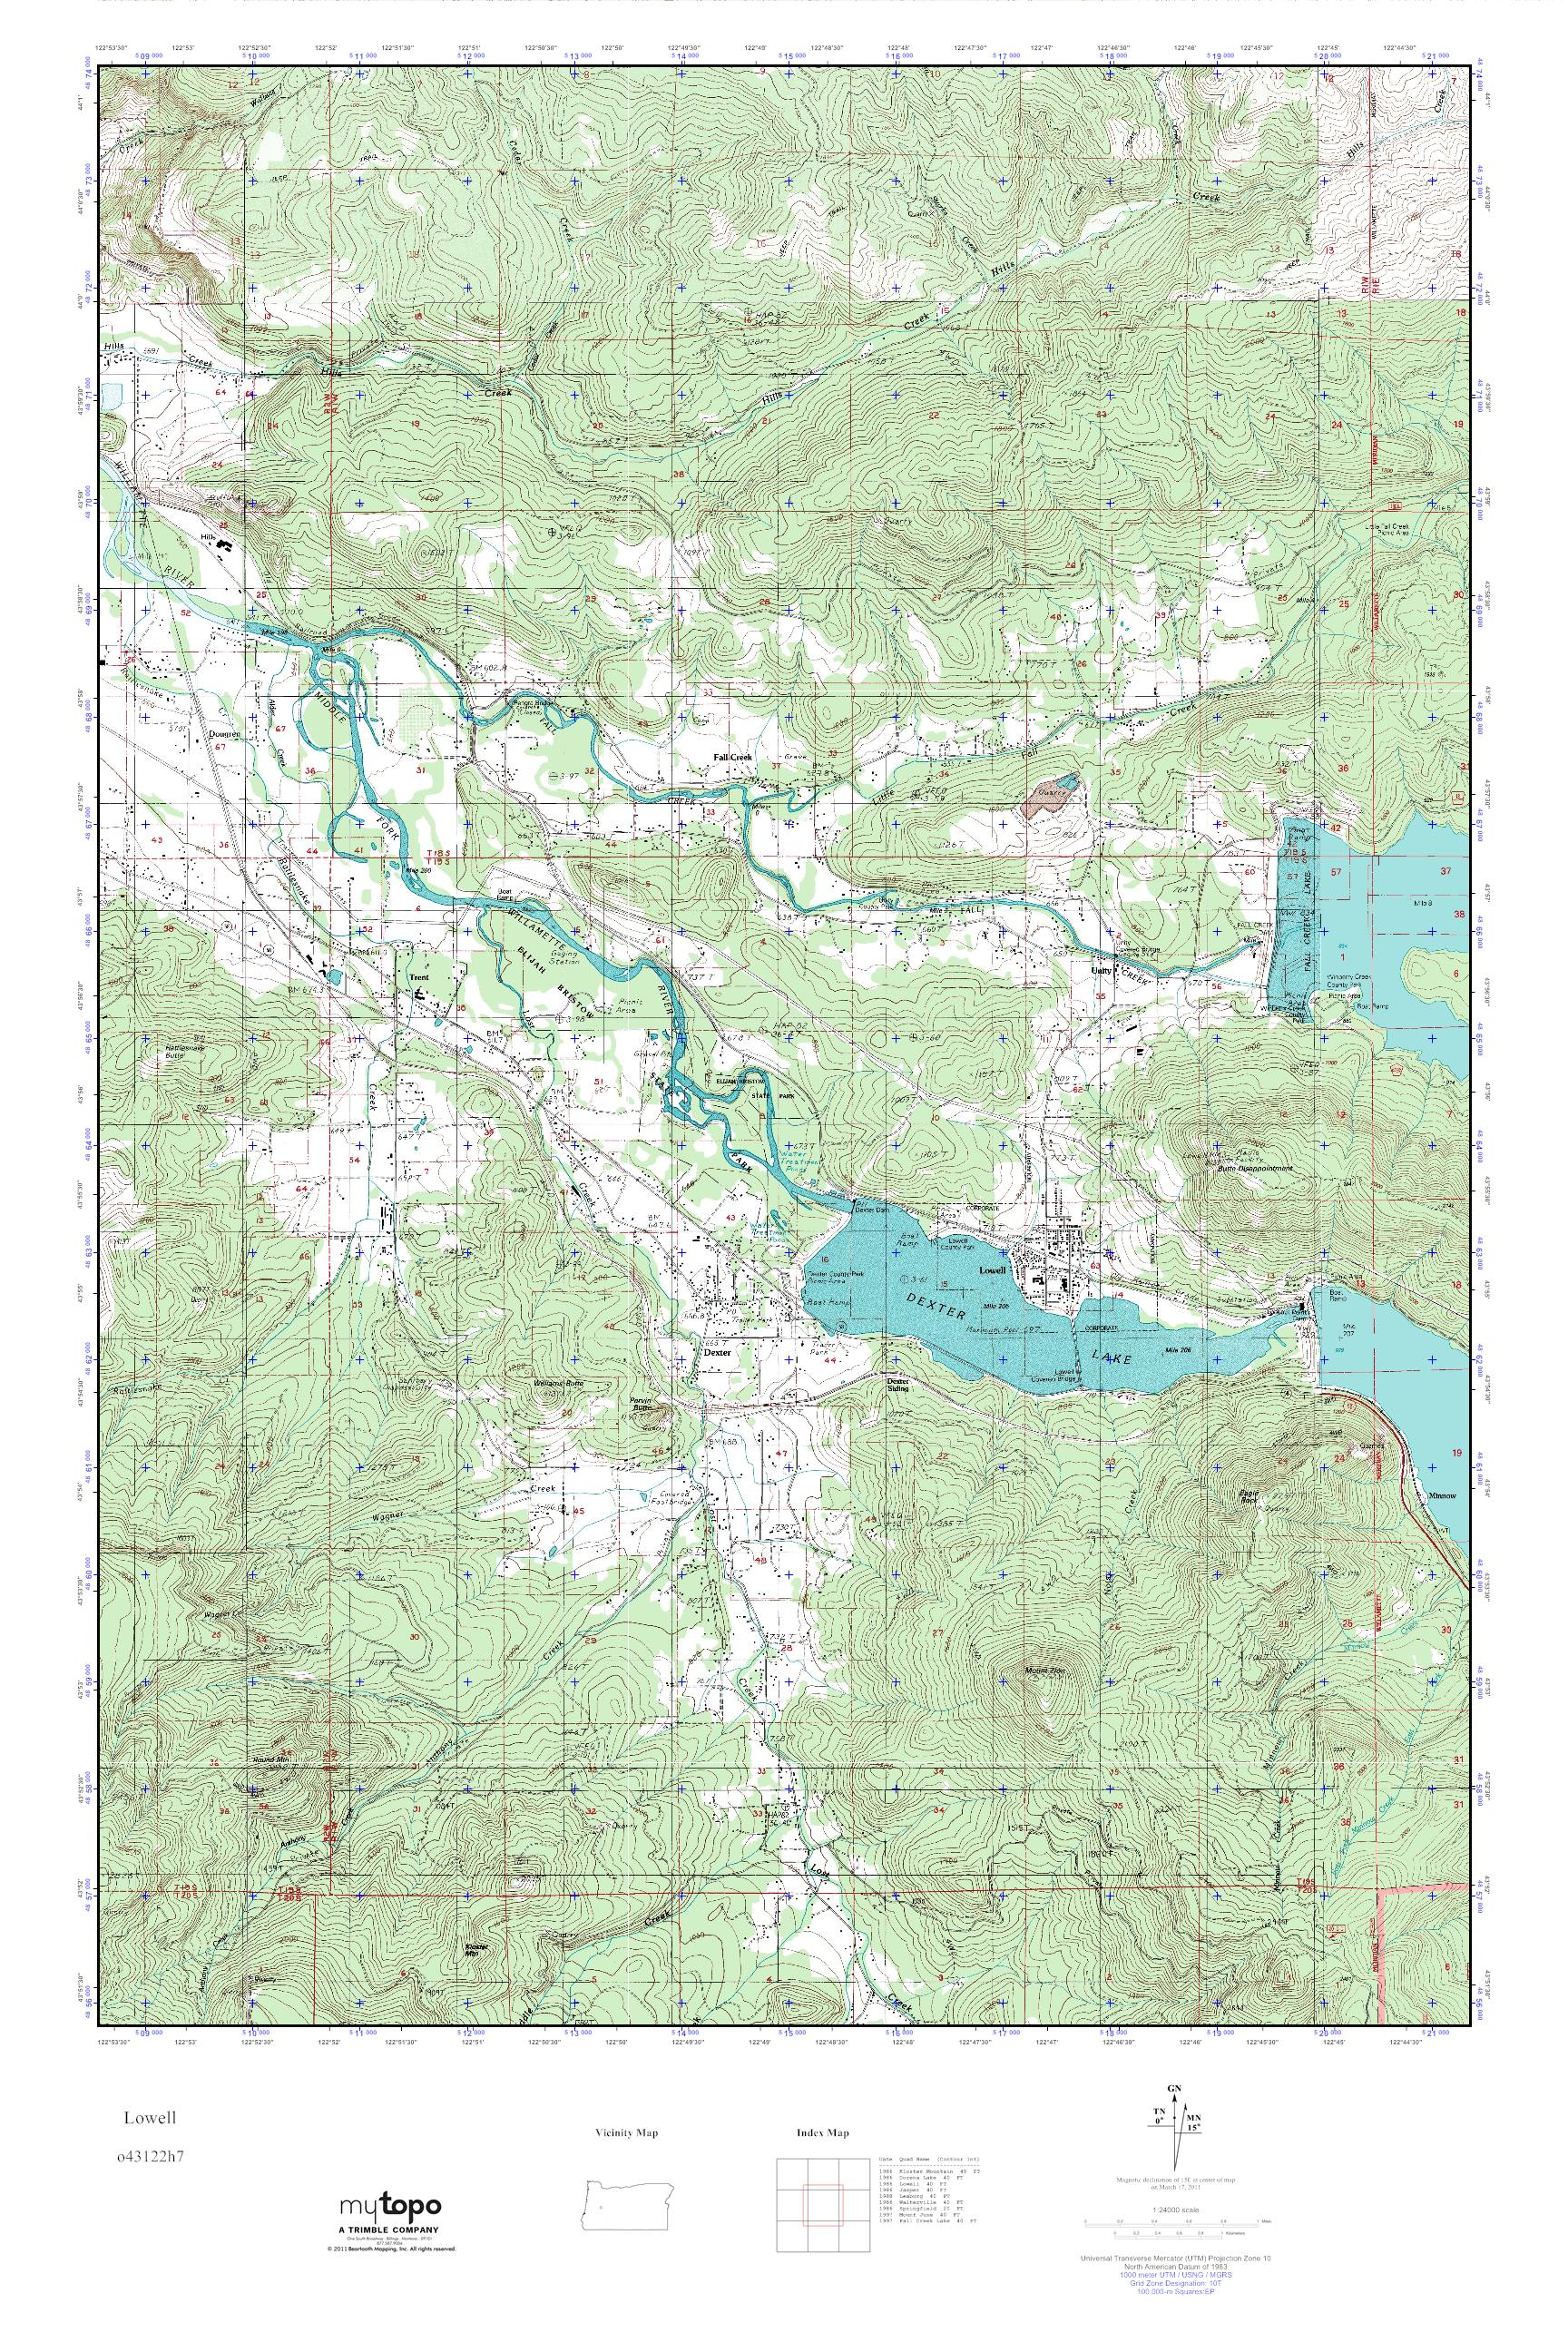 Lowell Oregon Map.Mytopo Lowell Oregon Usgs Quad Topo Map